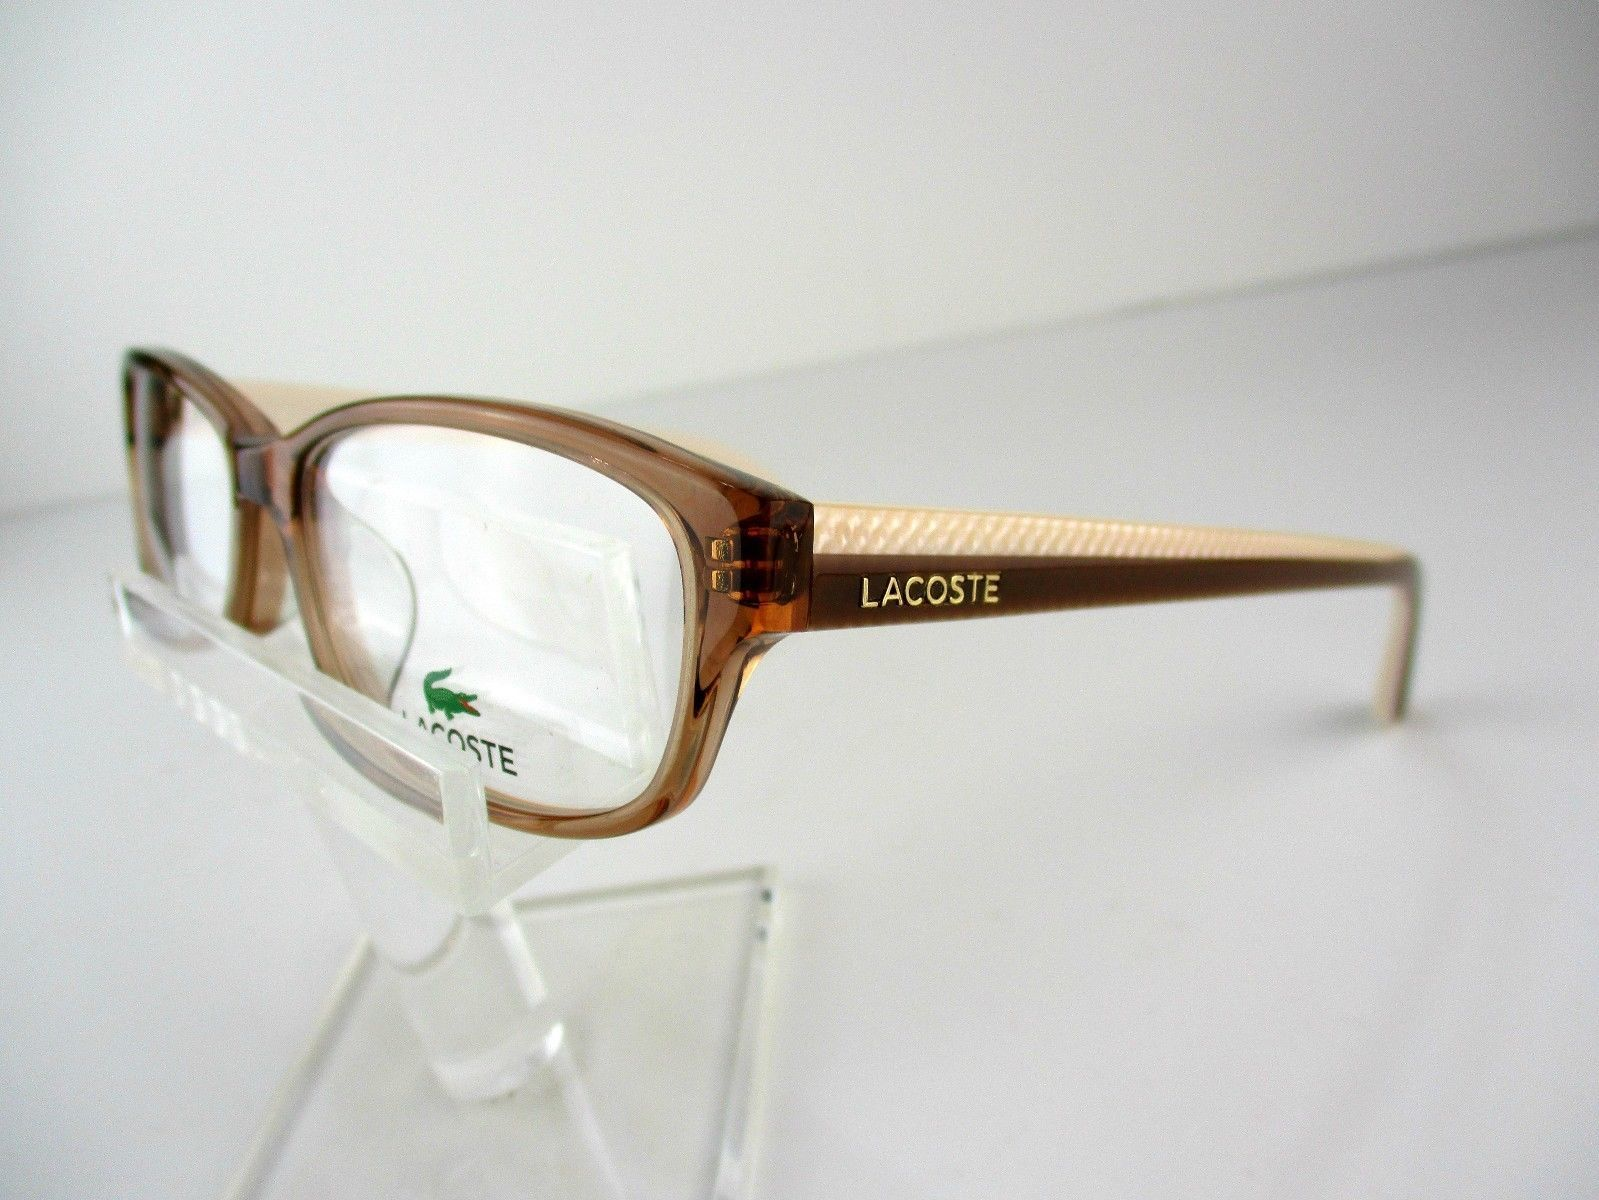 186026e91f NEW Lacoste L-2695A (234) Crystal Brown 54 X 16 140 mm Eyeglass